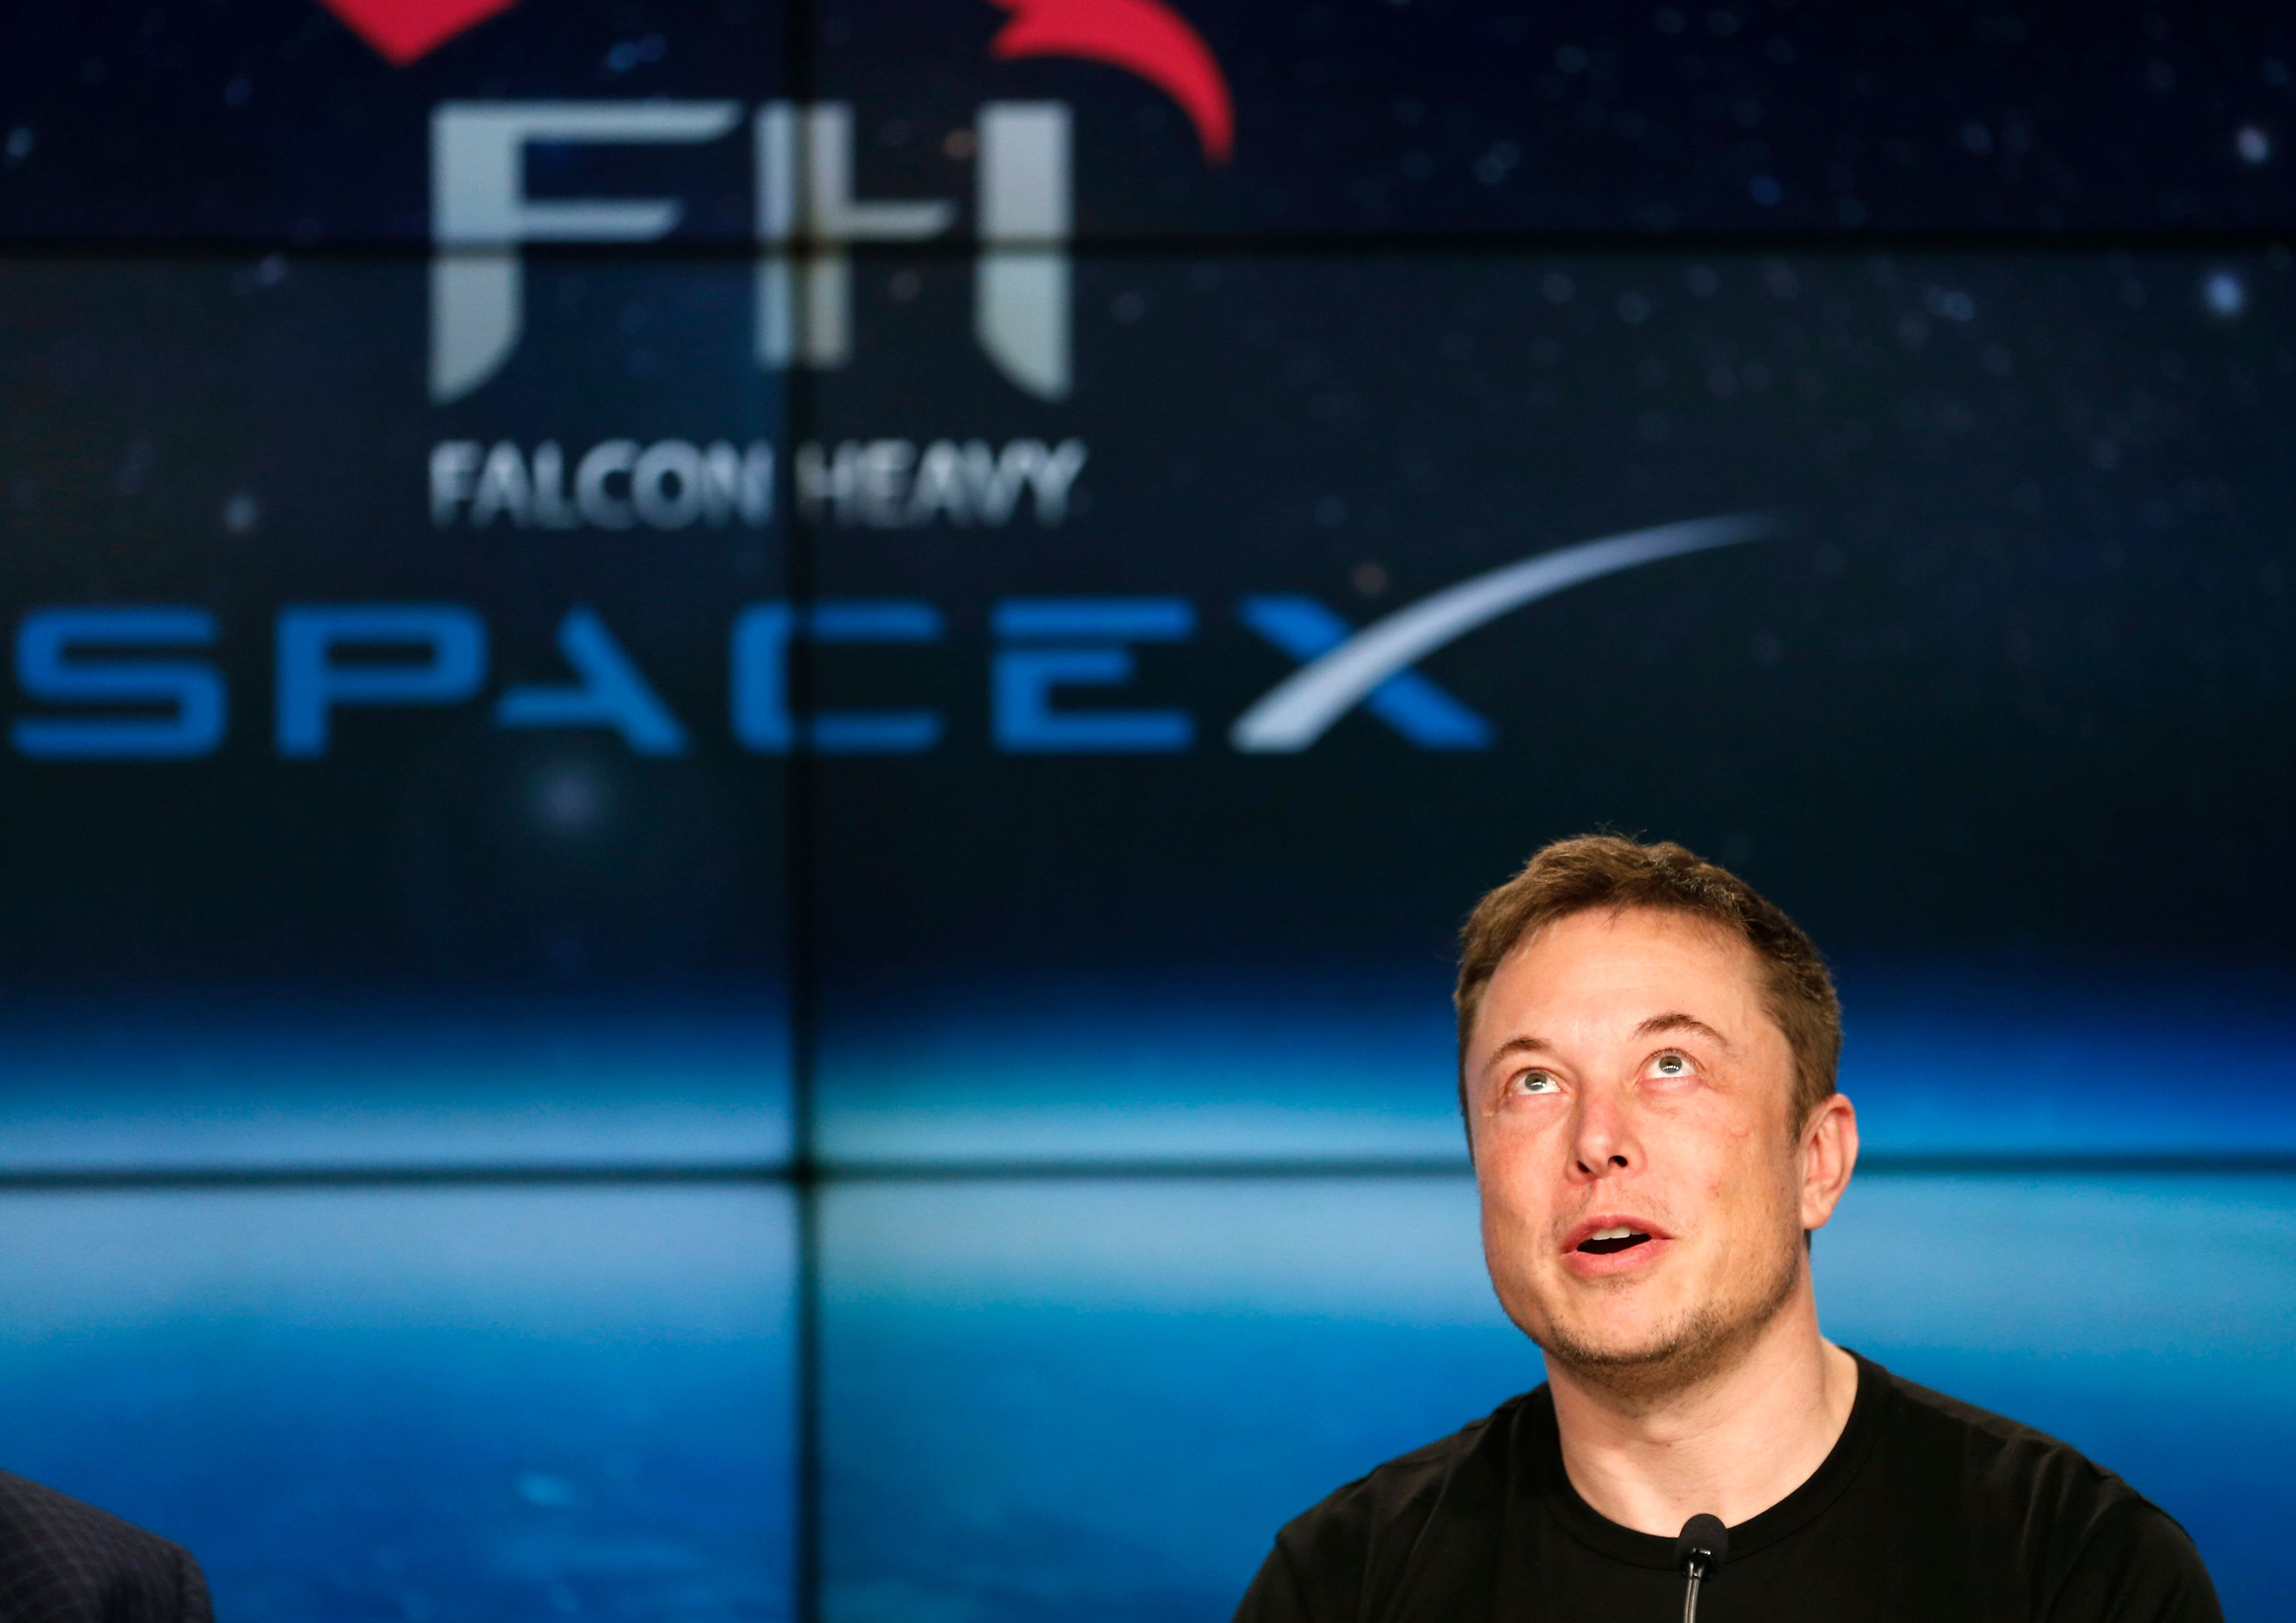 SpaceX founder Elon Musk speaks at a press conference following the first launch of a SpaceX Falcon Heavy rocket at the Kennedy Space Center in Cape Canaveral, Florida, U.S., February 6, 2018. REUTERS/Joe Skipper